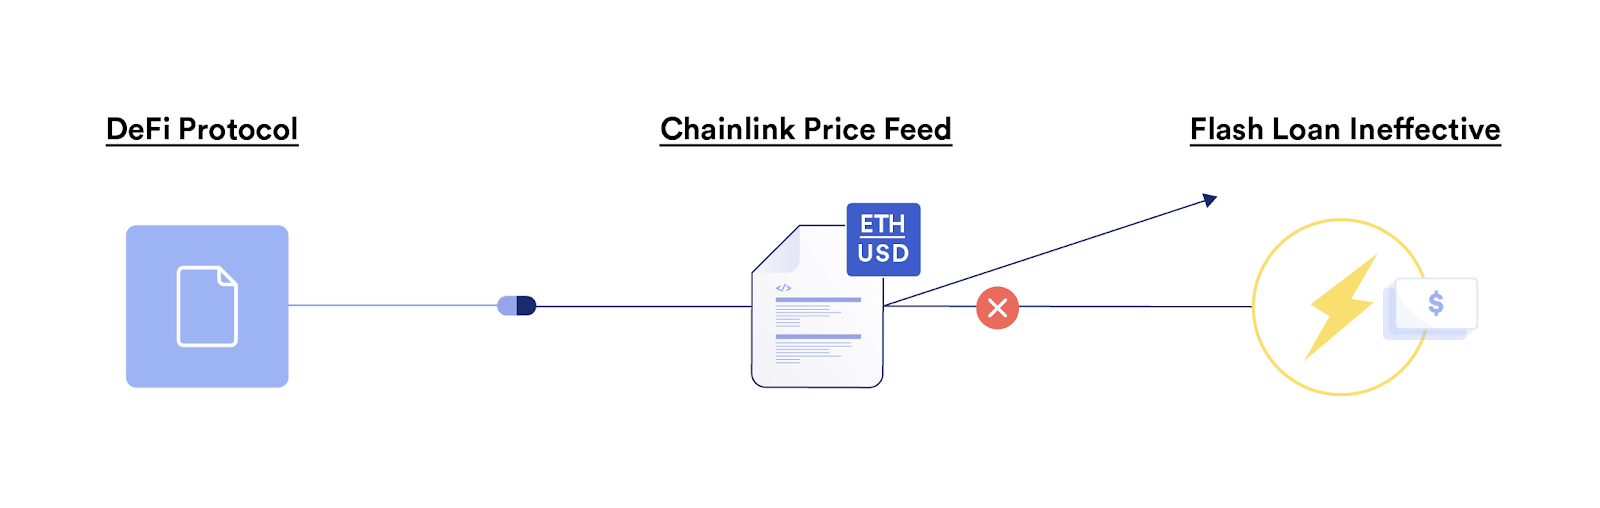 Flash Loans ineffective against Chainlink Price Feeds